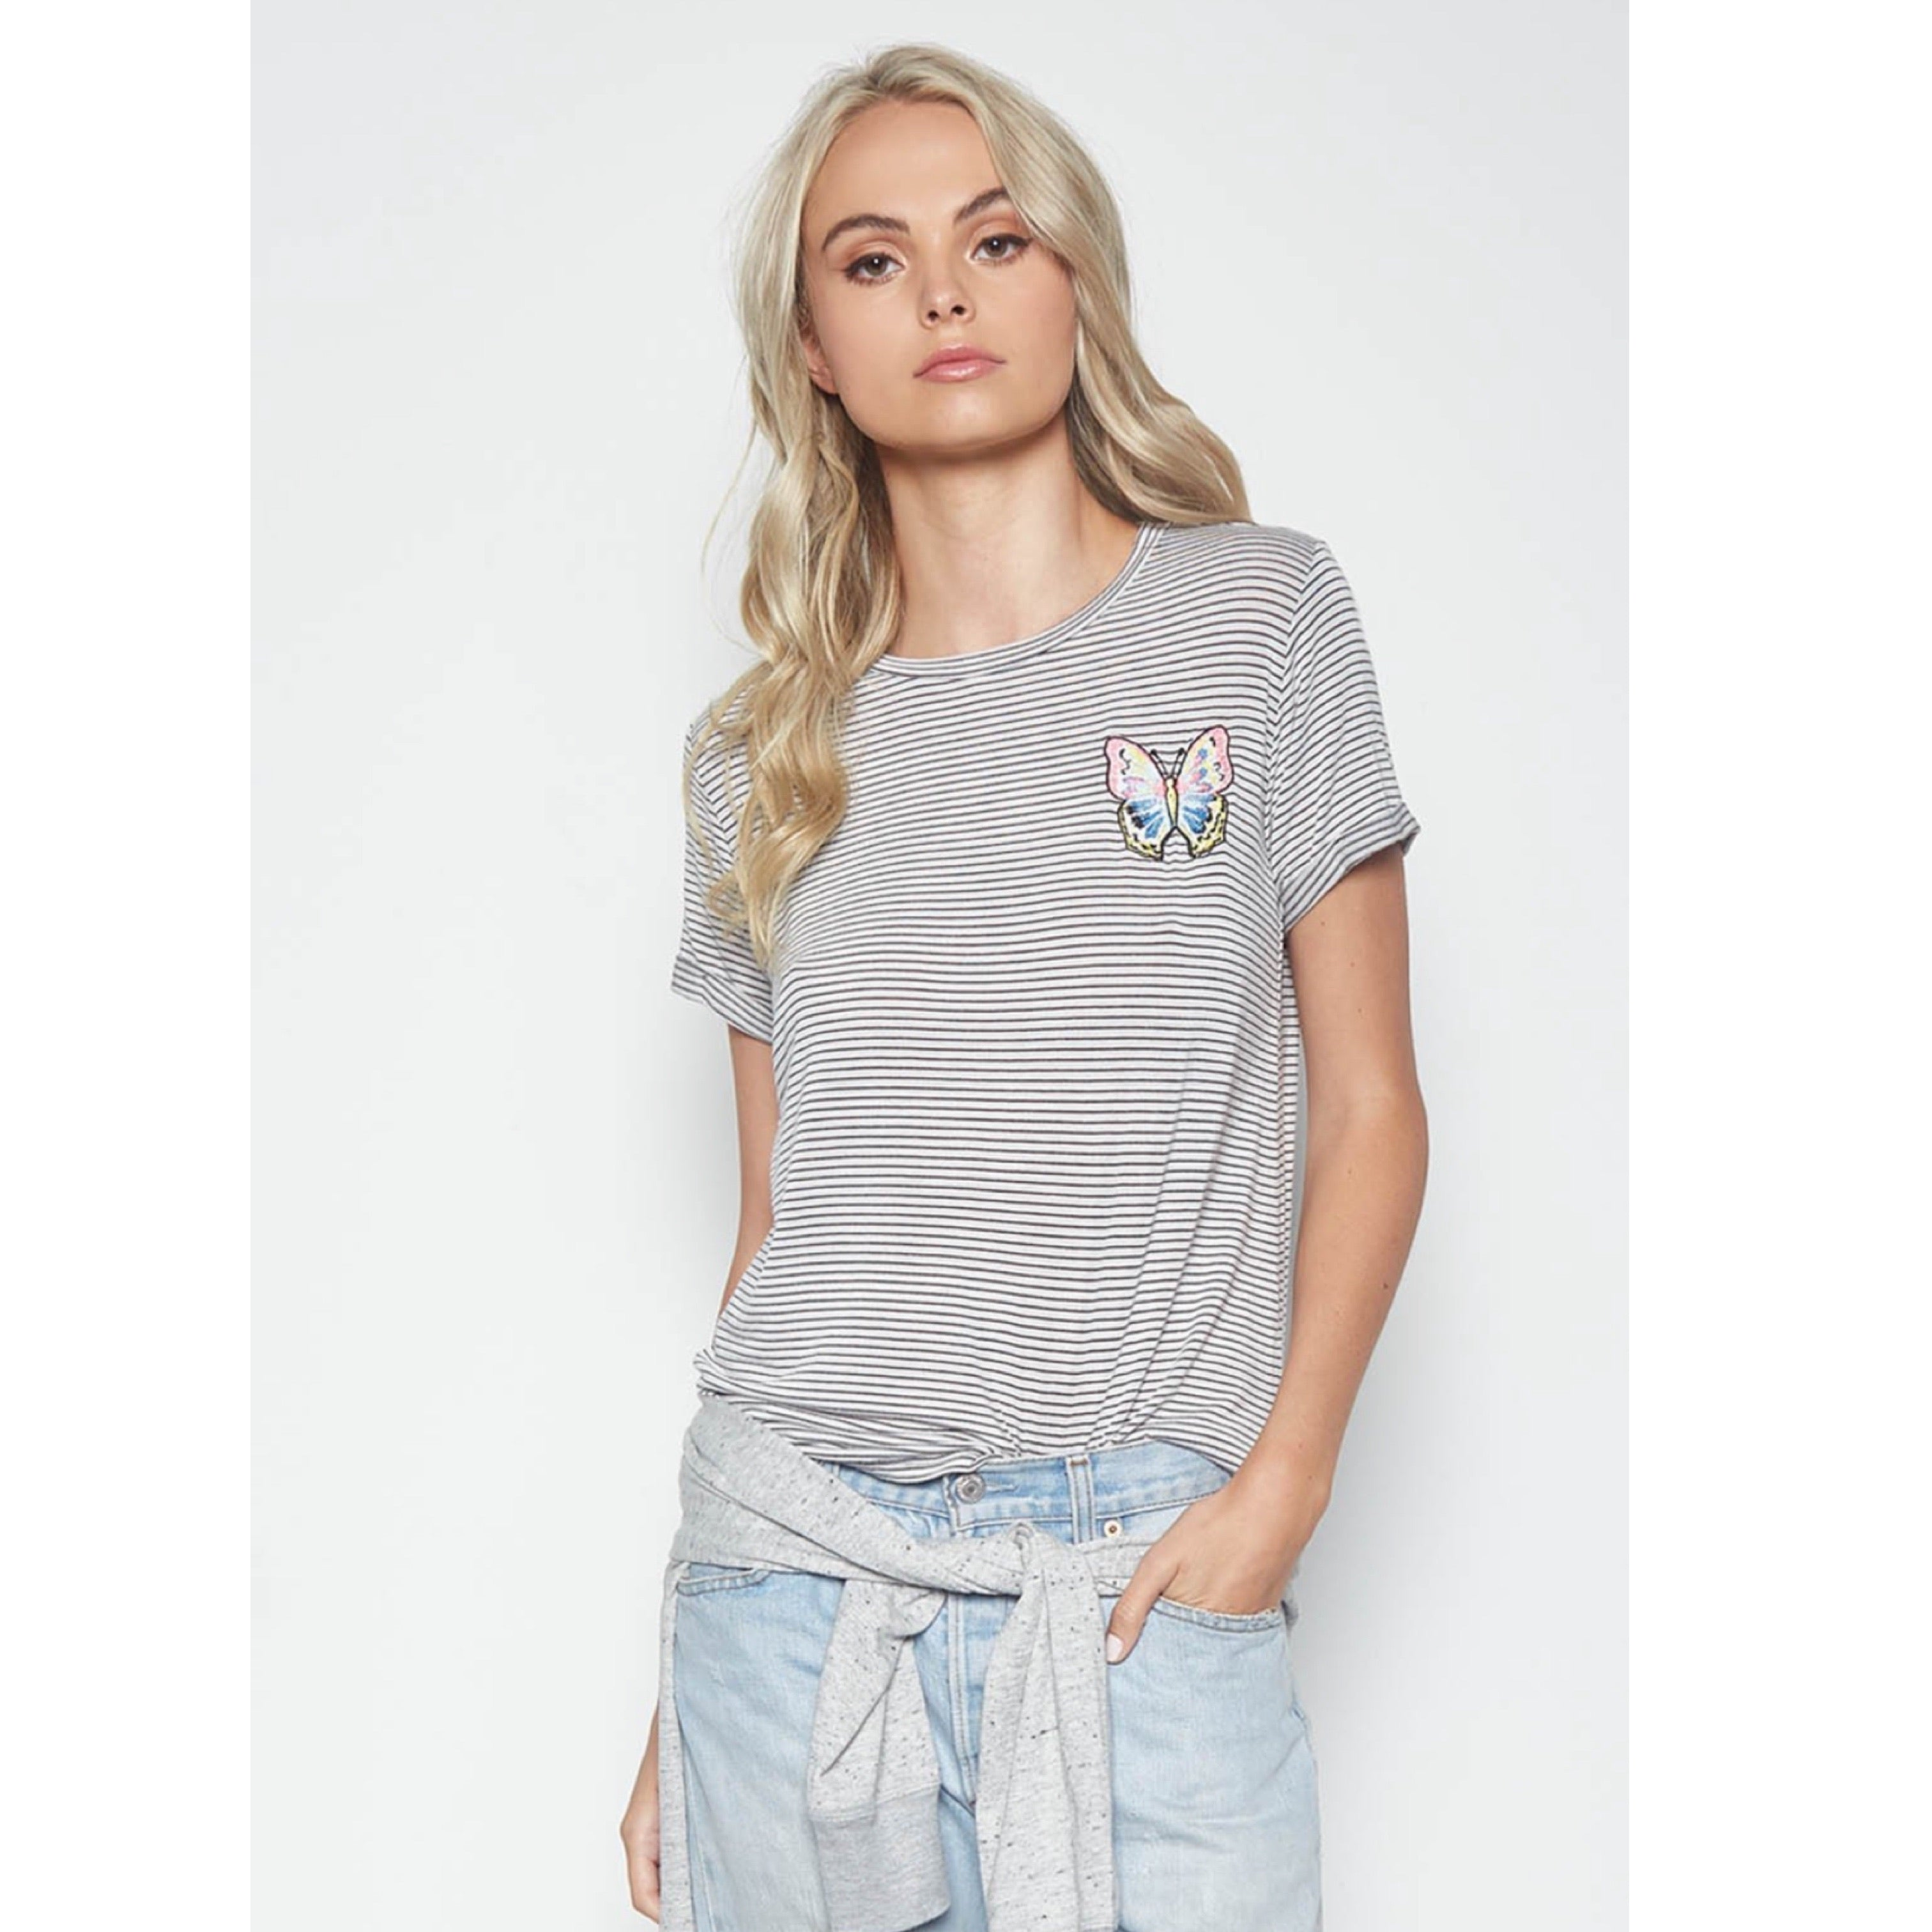 Limp Roll Up Sleeve Tee in Charcoal Stripe Butterfly